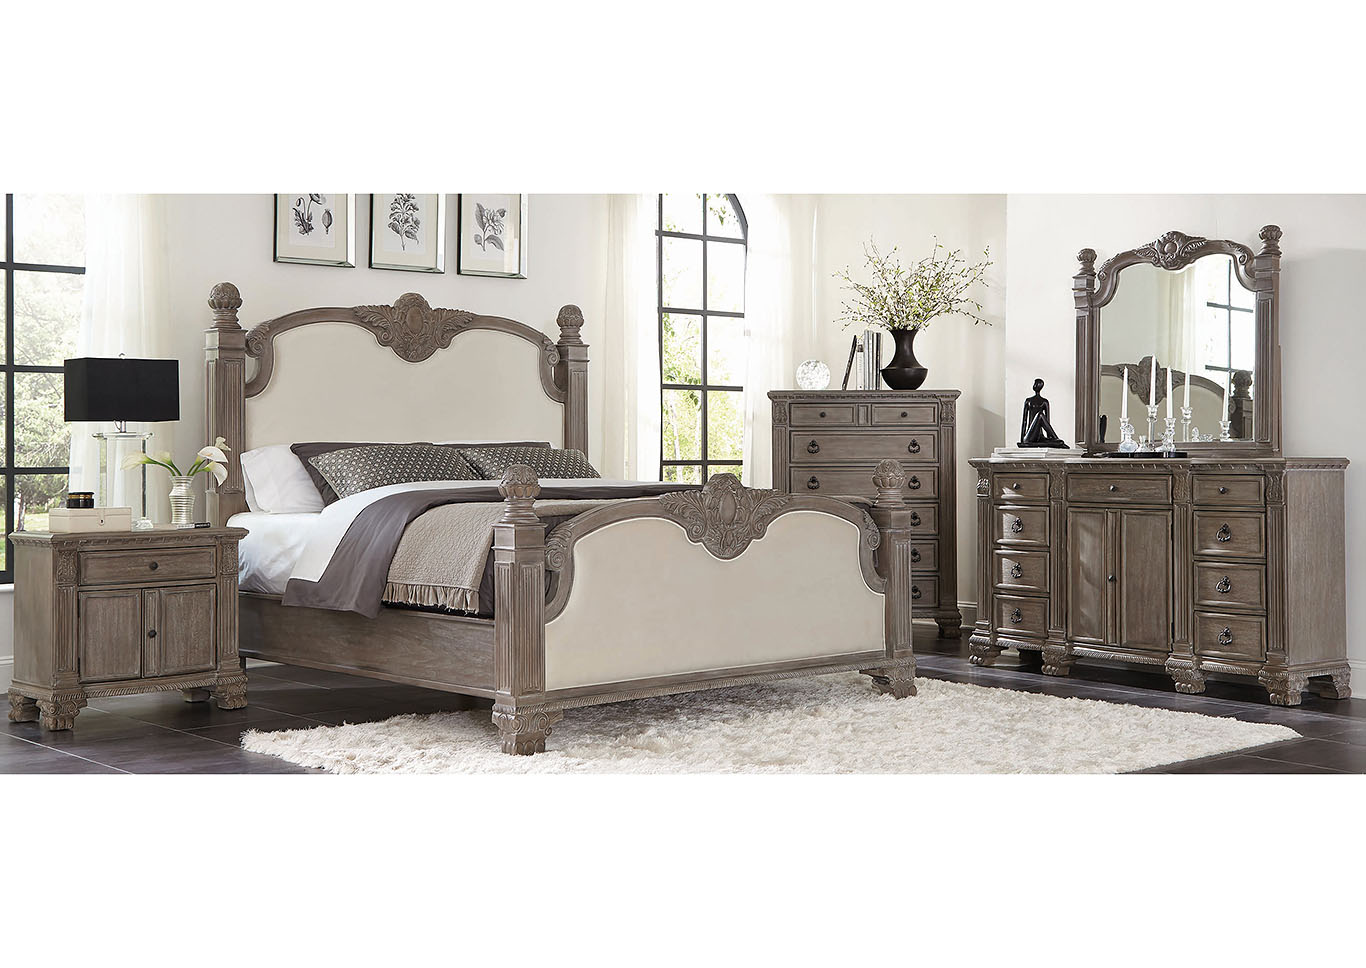 Jenna Vintage Grey Upholstered Eastern King Bed,Coaster Furniture